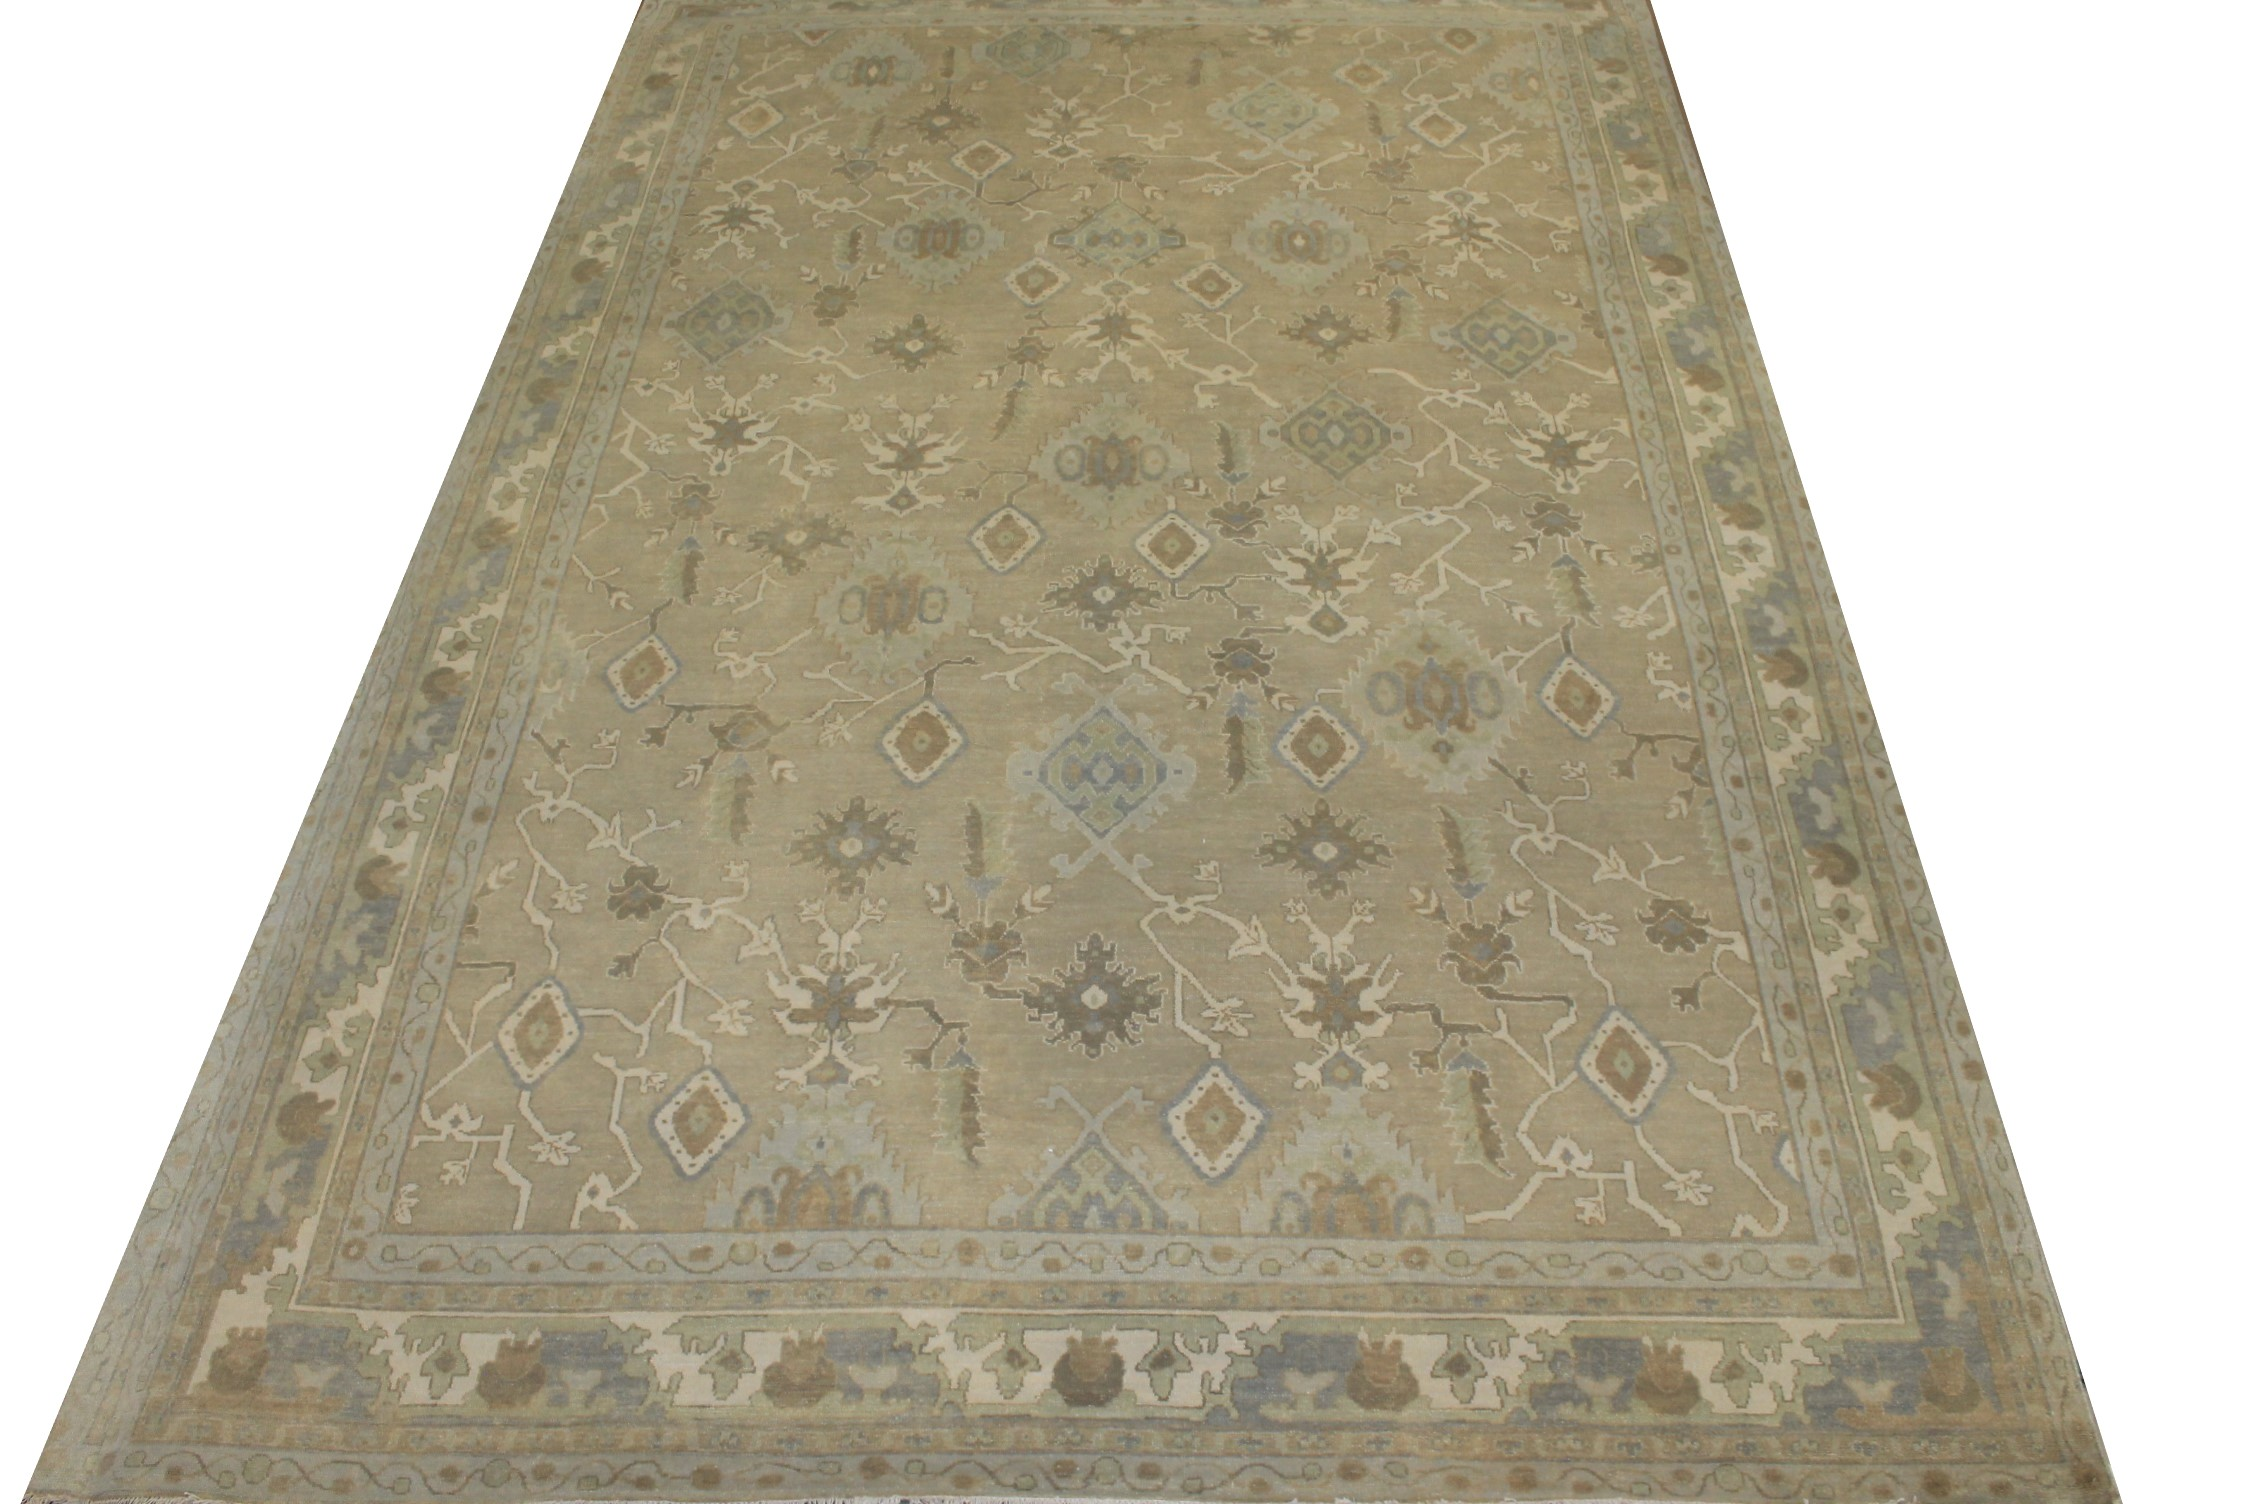 10x14 Oushak Hand Knotted Wool Area Rug - MR024330